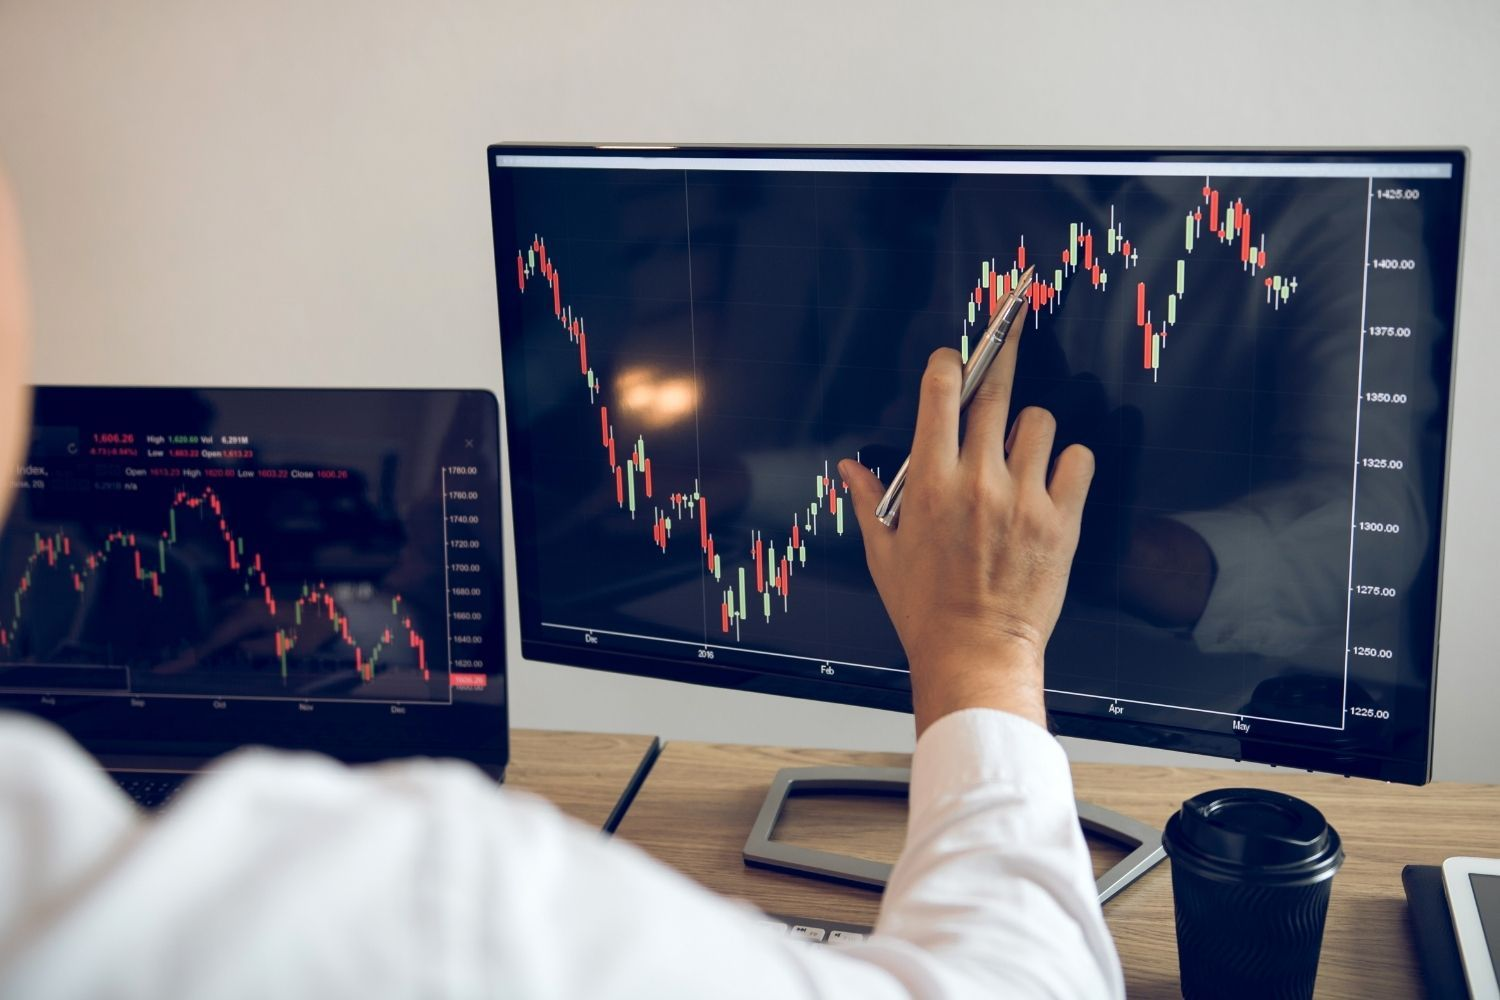 Forex trading strategy based on Technical Analysis.